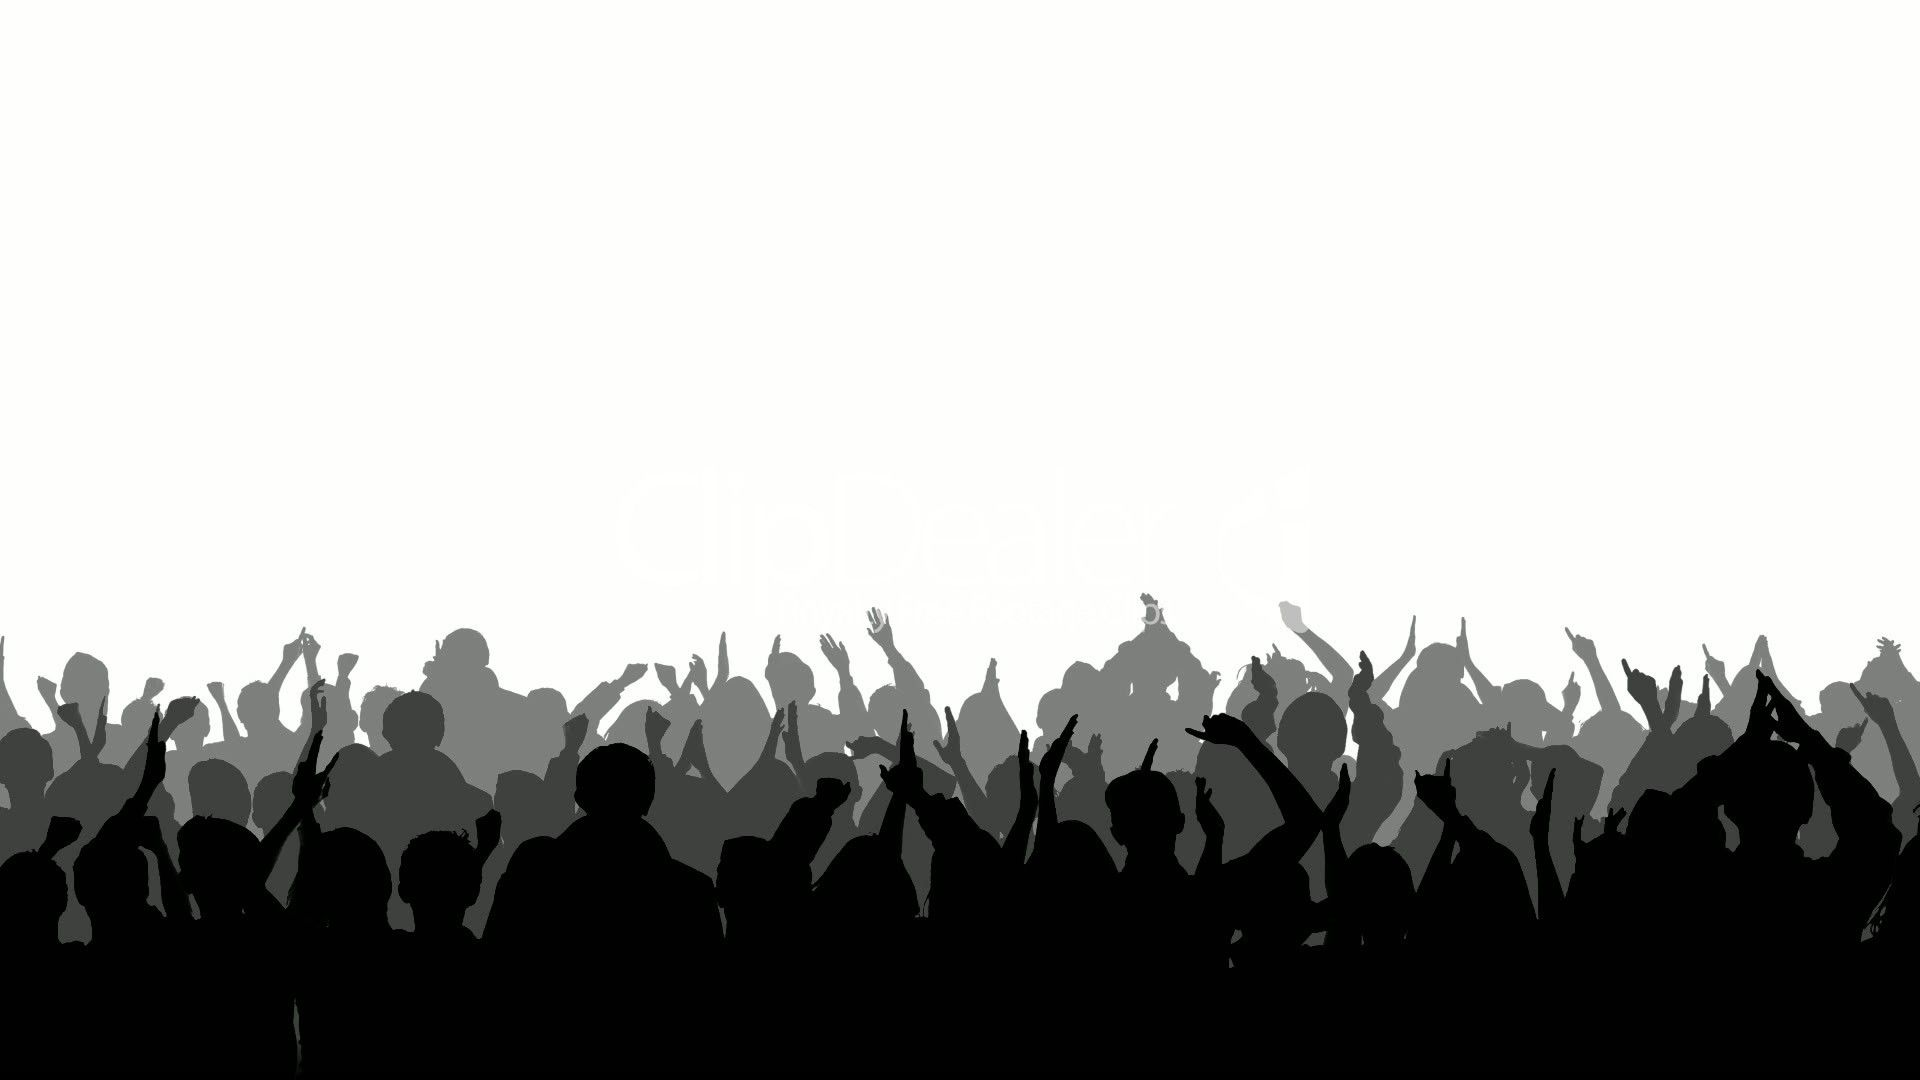 silhouettes | Cheering Crowd Silhouettes 2: Royalty-free video and stock footage